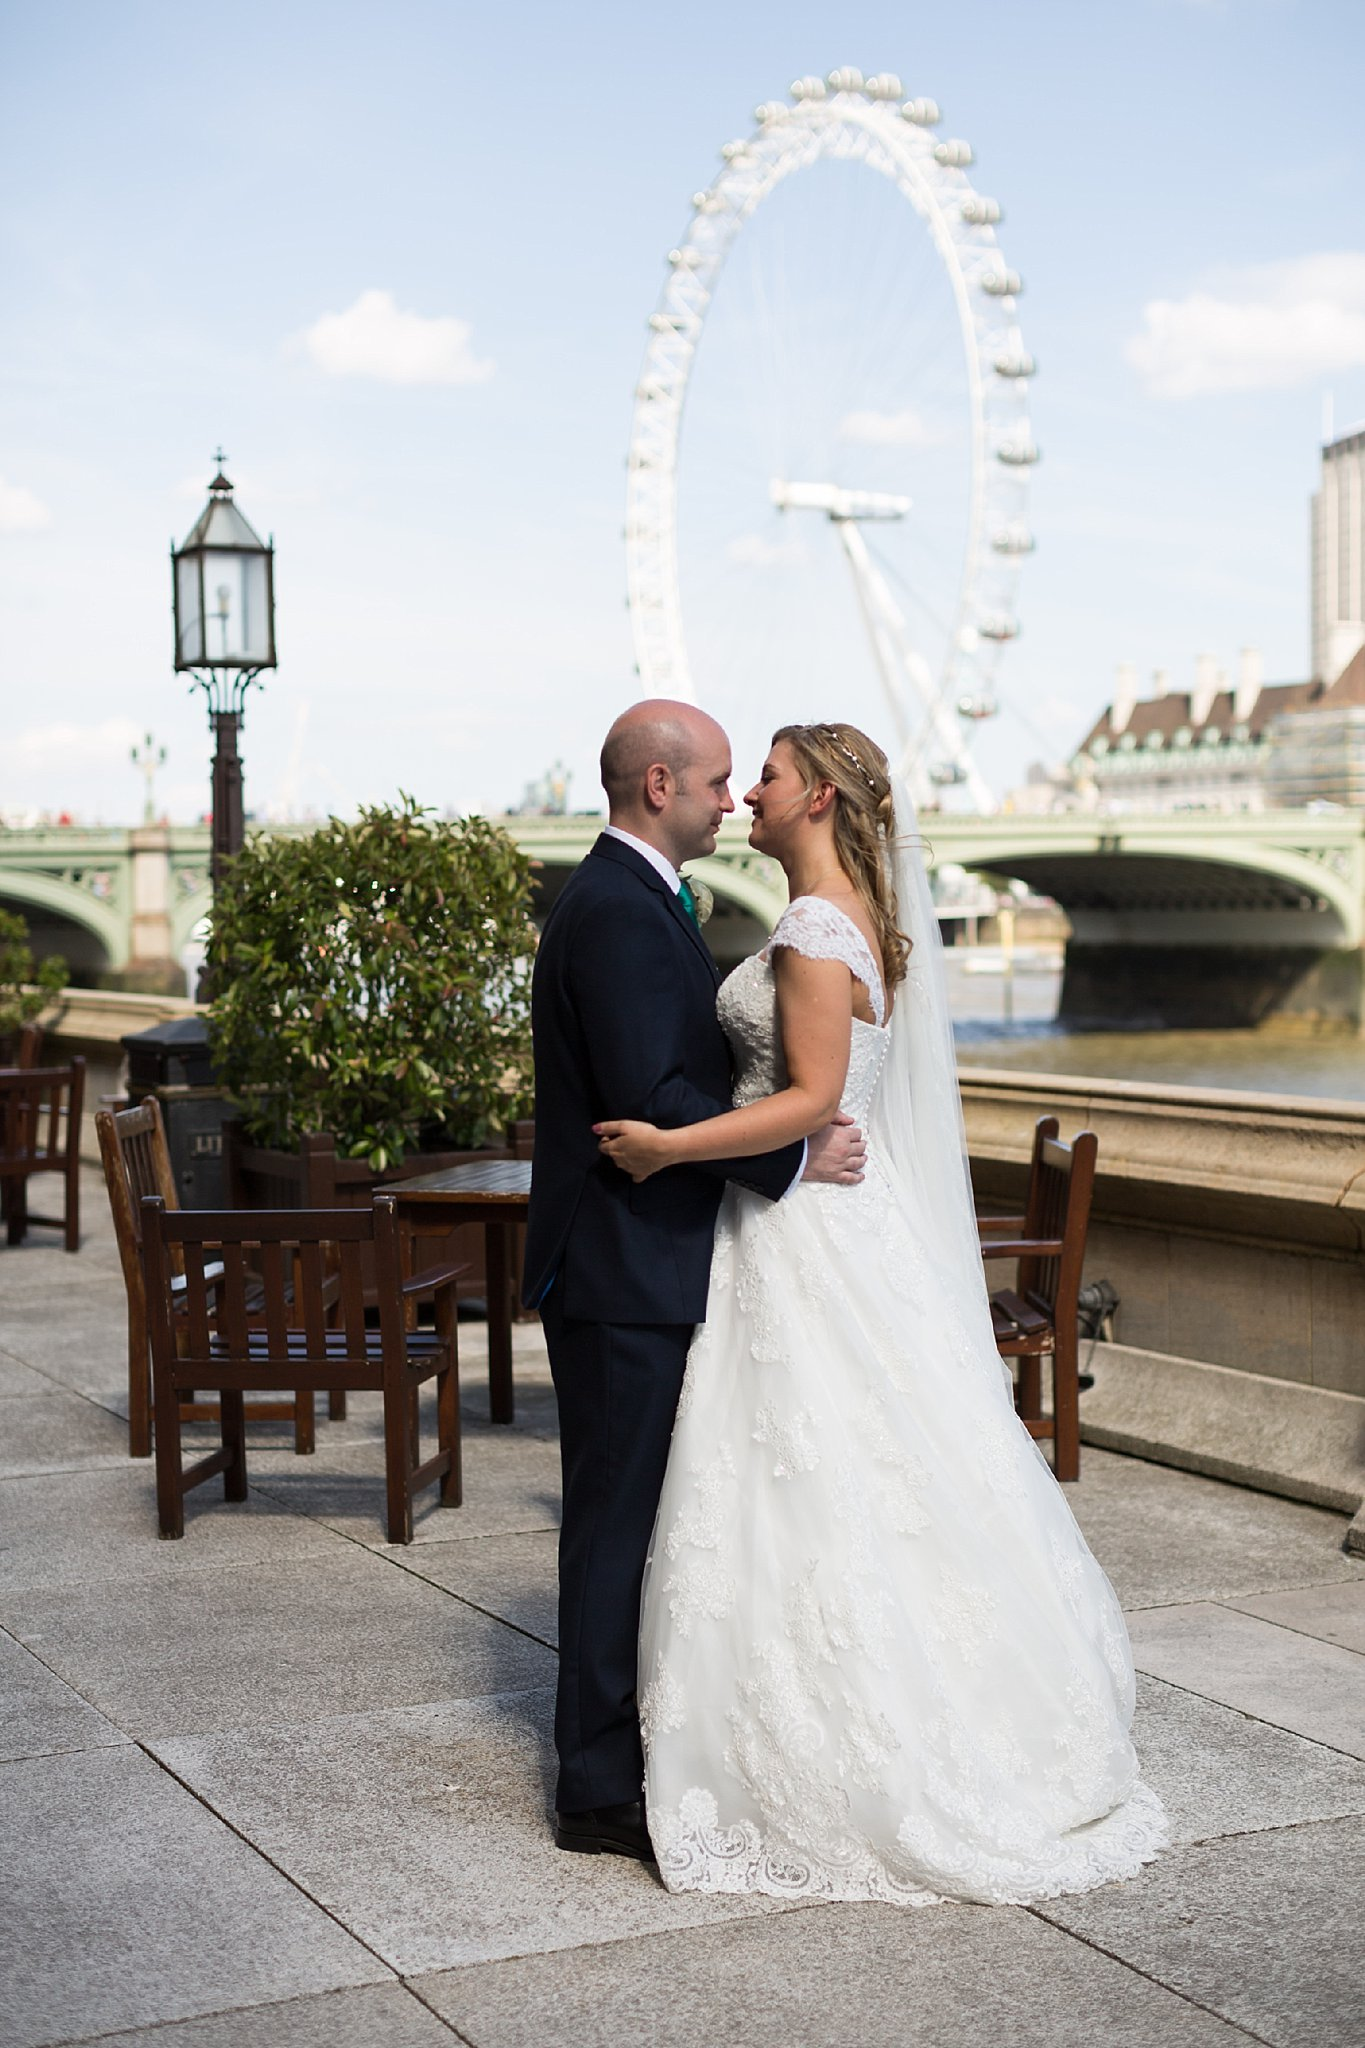 Trinity buoy wharf wedding with lace mon cheri bridal gown bride groom london landmark wedding photographs ombrellifo Image collections